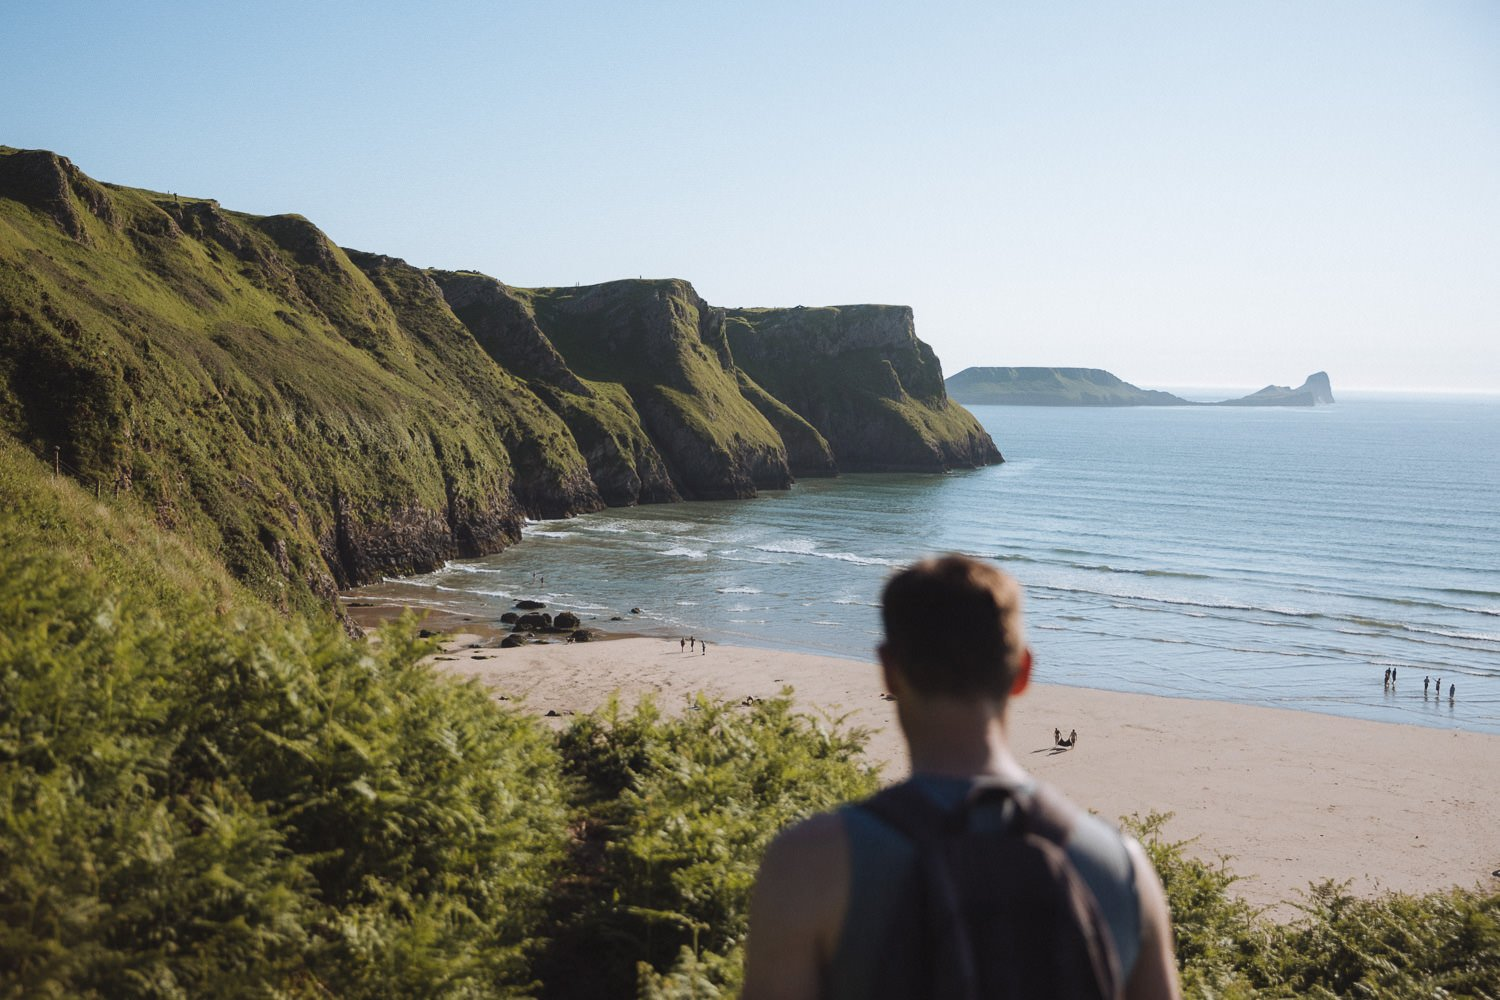 standing in front of a wide sandy beach with cliffs reaching the sea